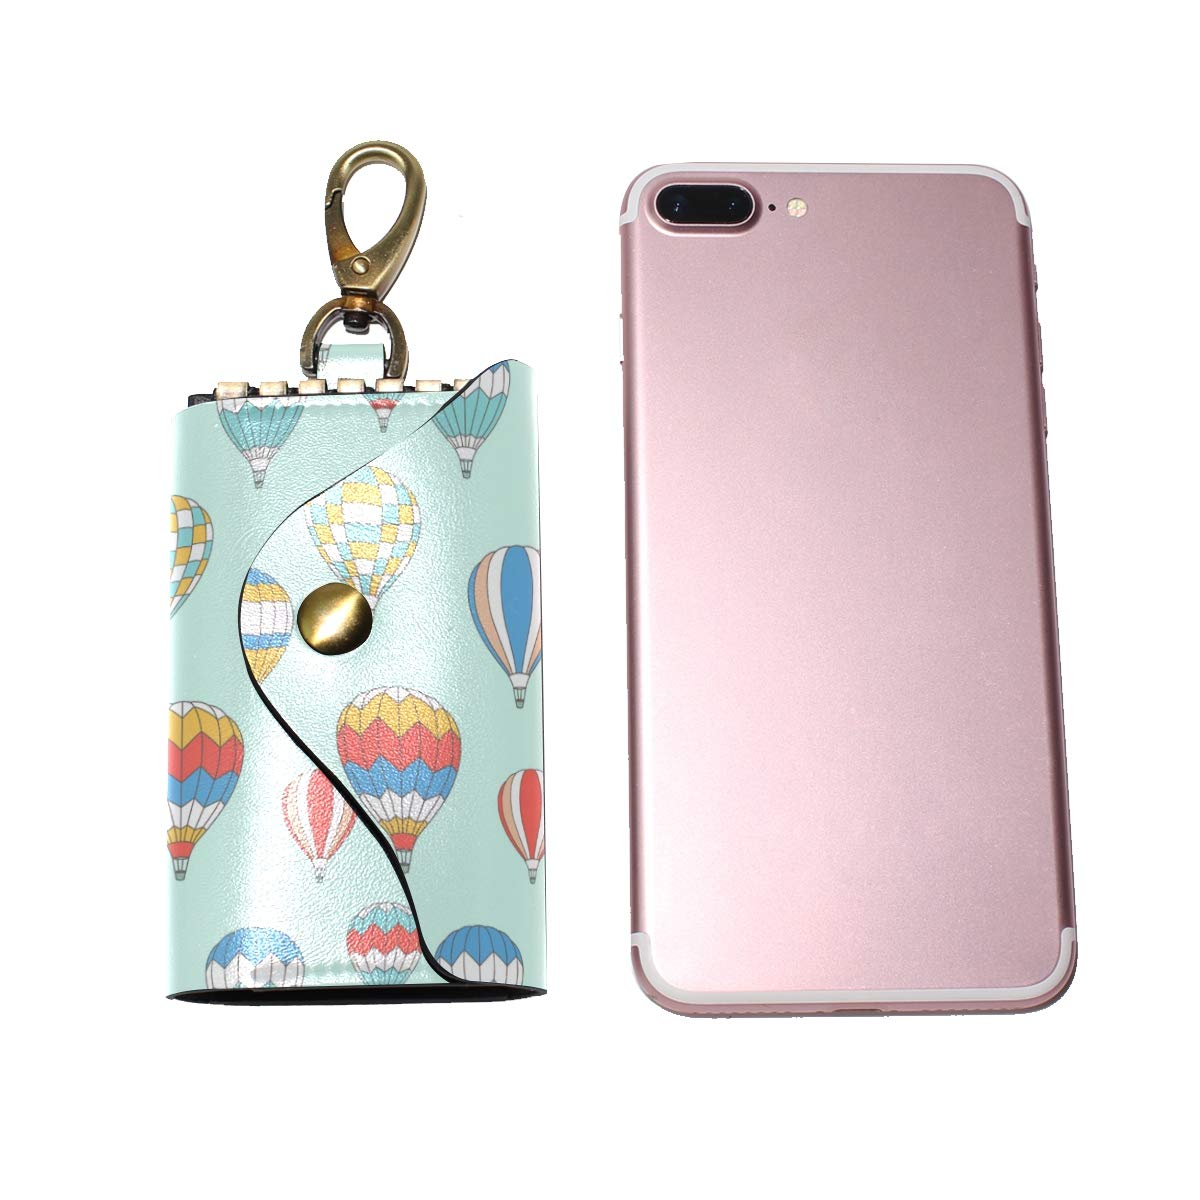 KEAKIA Hot Air Ballons Pattern Leather Key Case Wallets Tri-fold Key Holder Keychains with 6 Hooks 2 Slot Snap Closure for Men Women